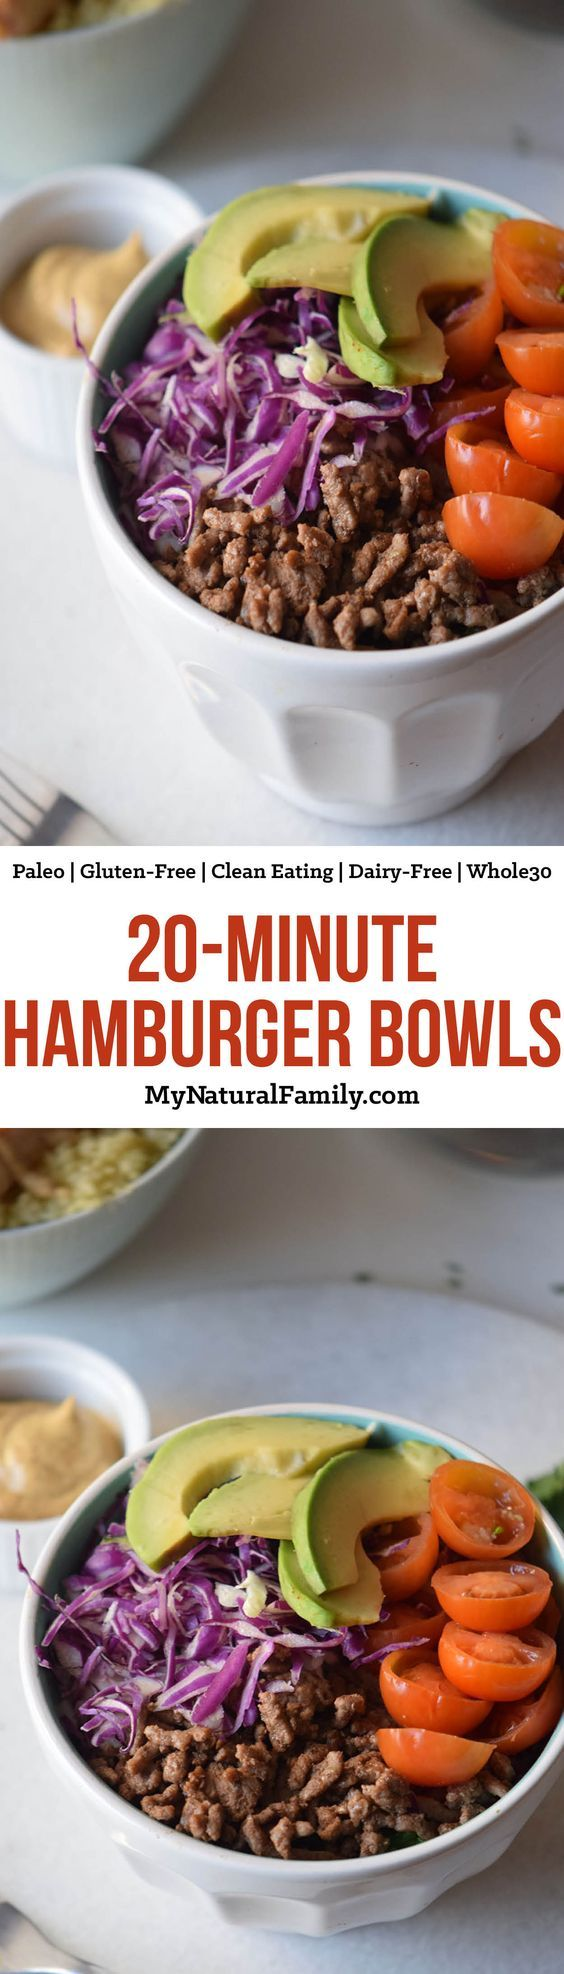 Paleo Hamburger Bowl Recipe